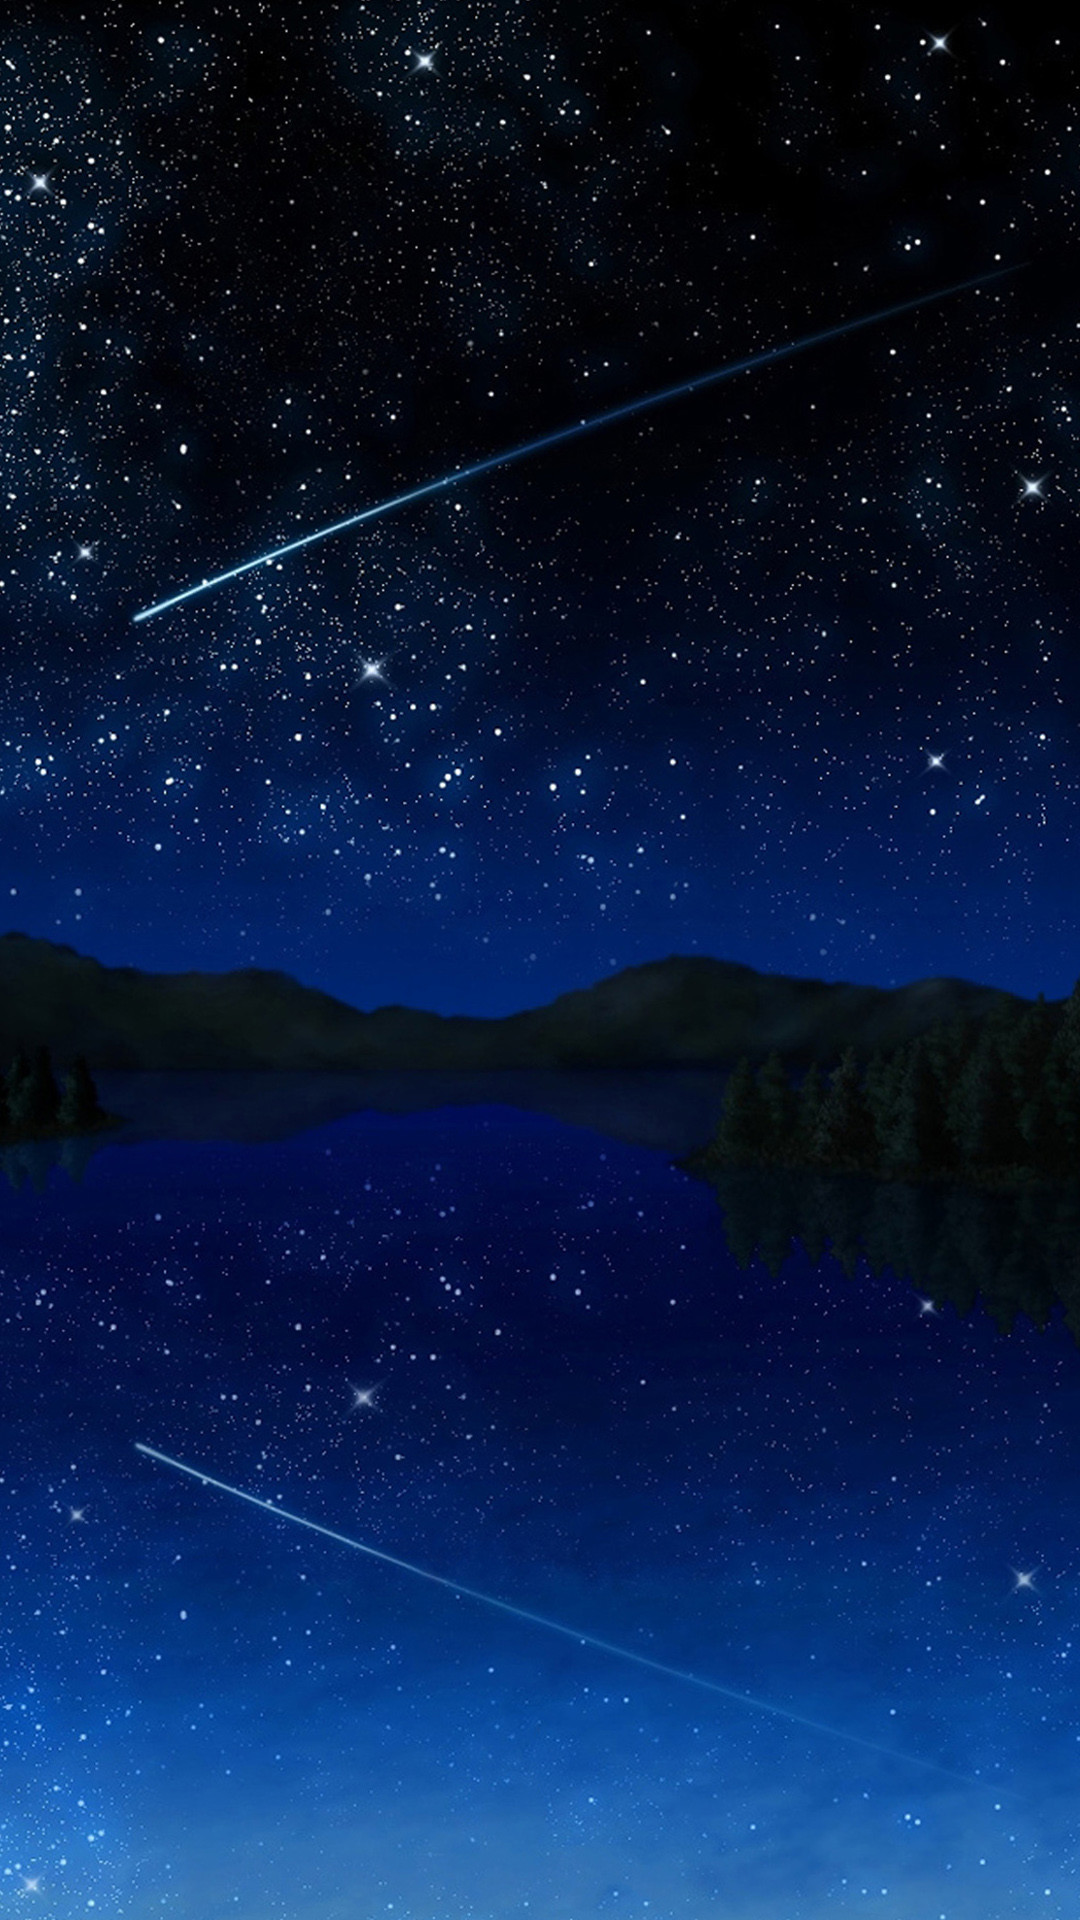 Shooting Stars Wallpaper  76  Images